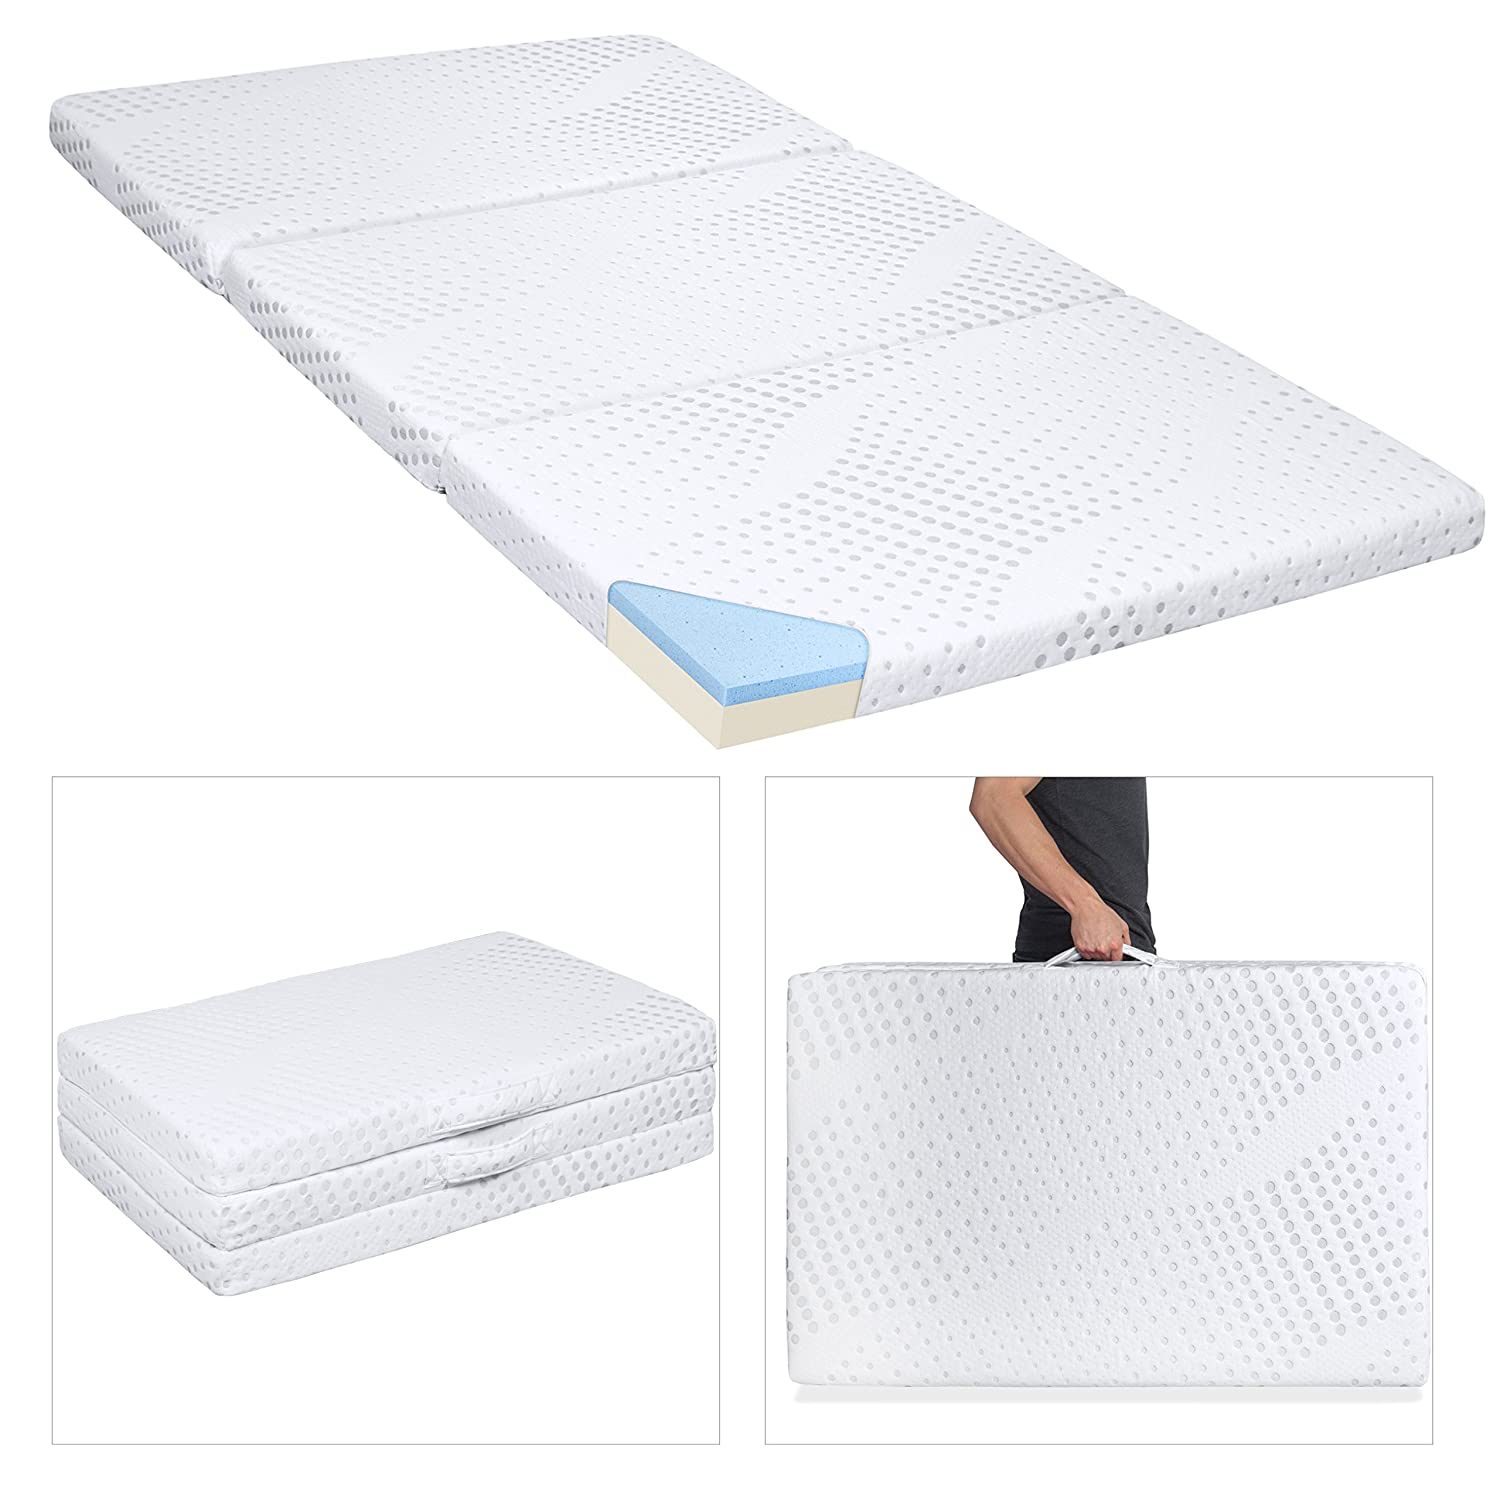 folding foam mattress. Amazon.com: Best Choice Products Portable 3in Full Size Tri-Folding Memory  Foam Gel Mattress Topper W/Removable Cover: Home \u0026 Kitchen Folding Foam Mattress I